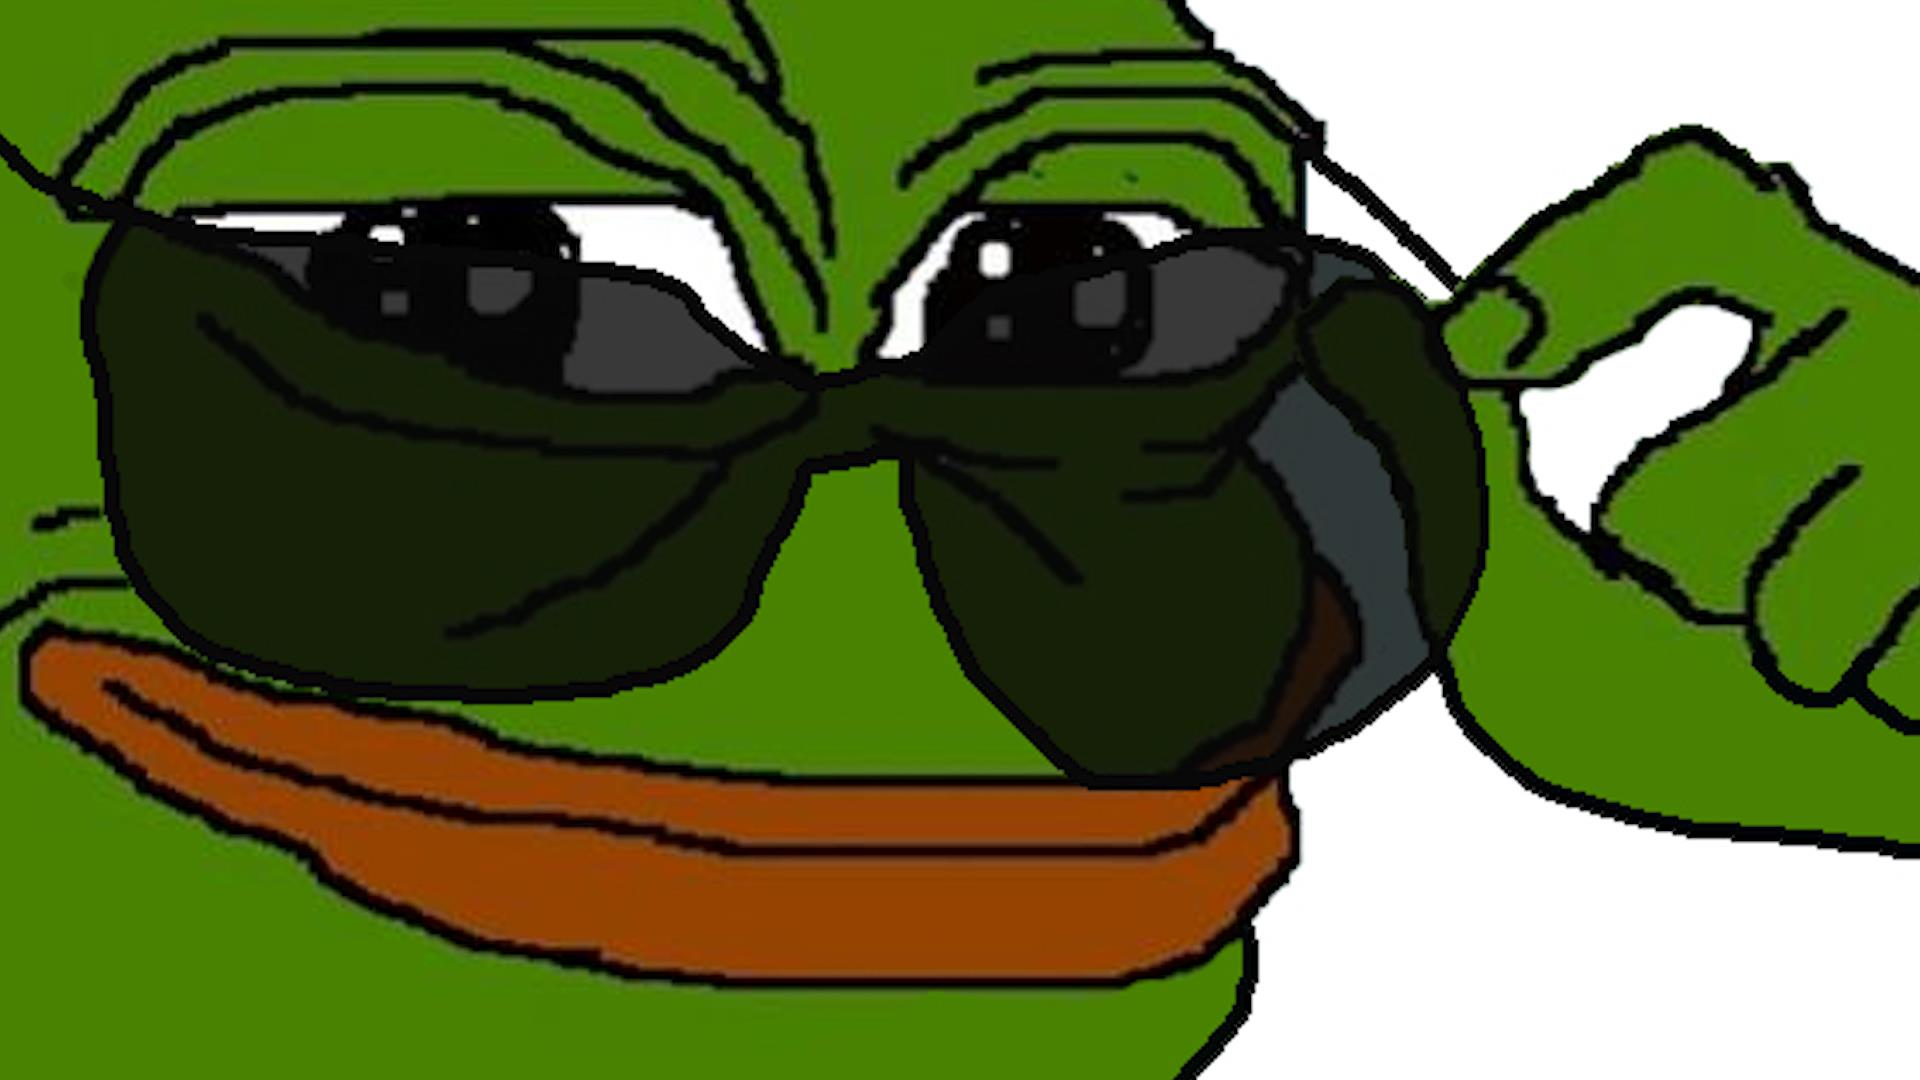 Pepe The Frog S Journey From Internet Meme To Hate Symbol